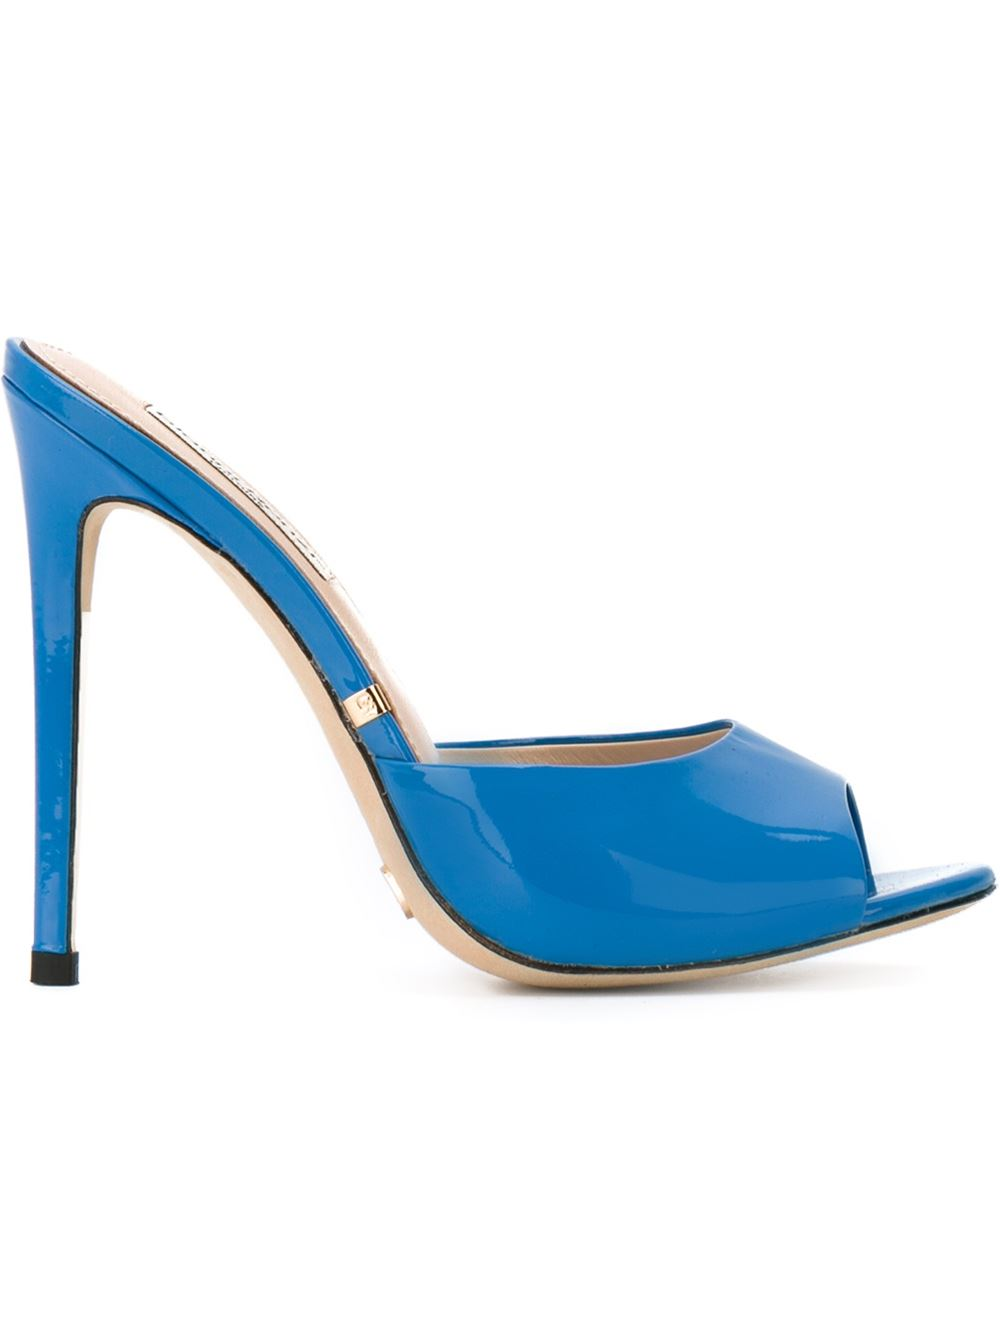 Gianna Renzi stiletto mules, FarFetch.com